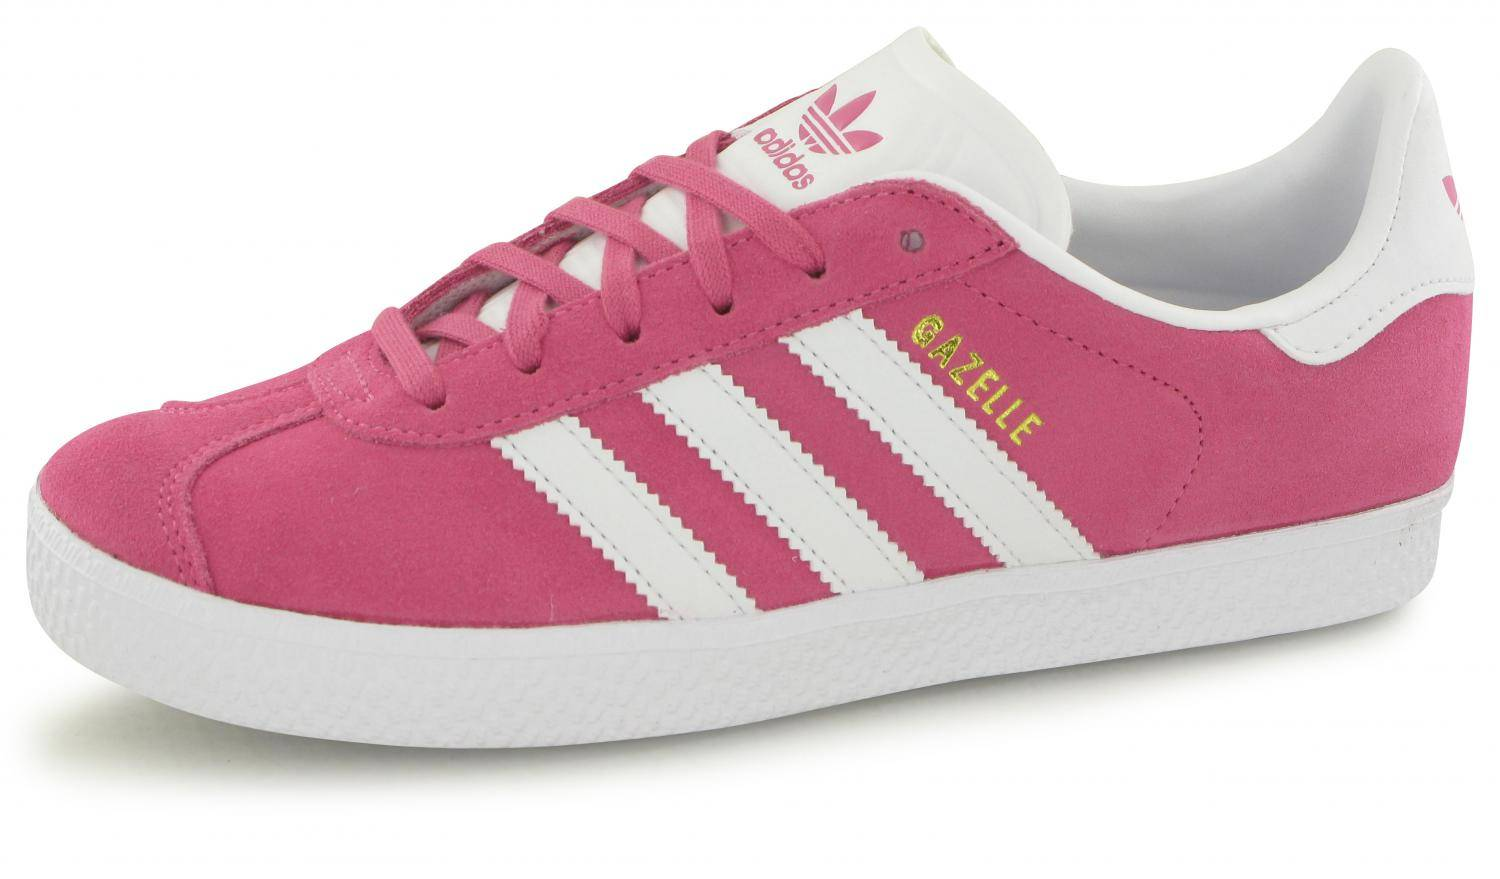 chaussures de sport 528ac 40b8c Adidas Gazelle Rose / Blanc Junior